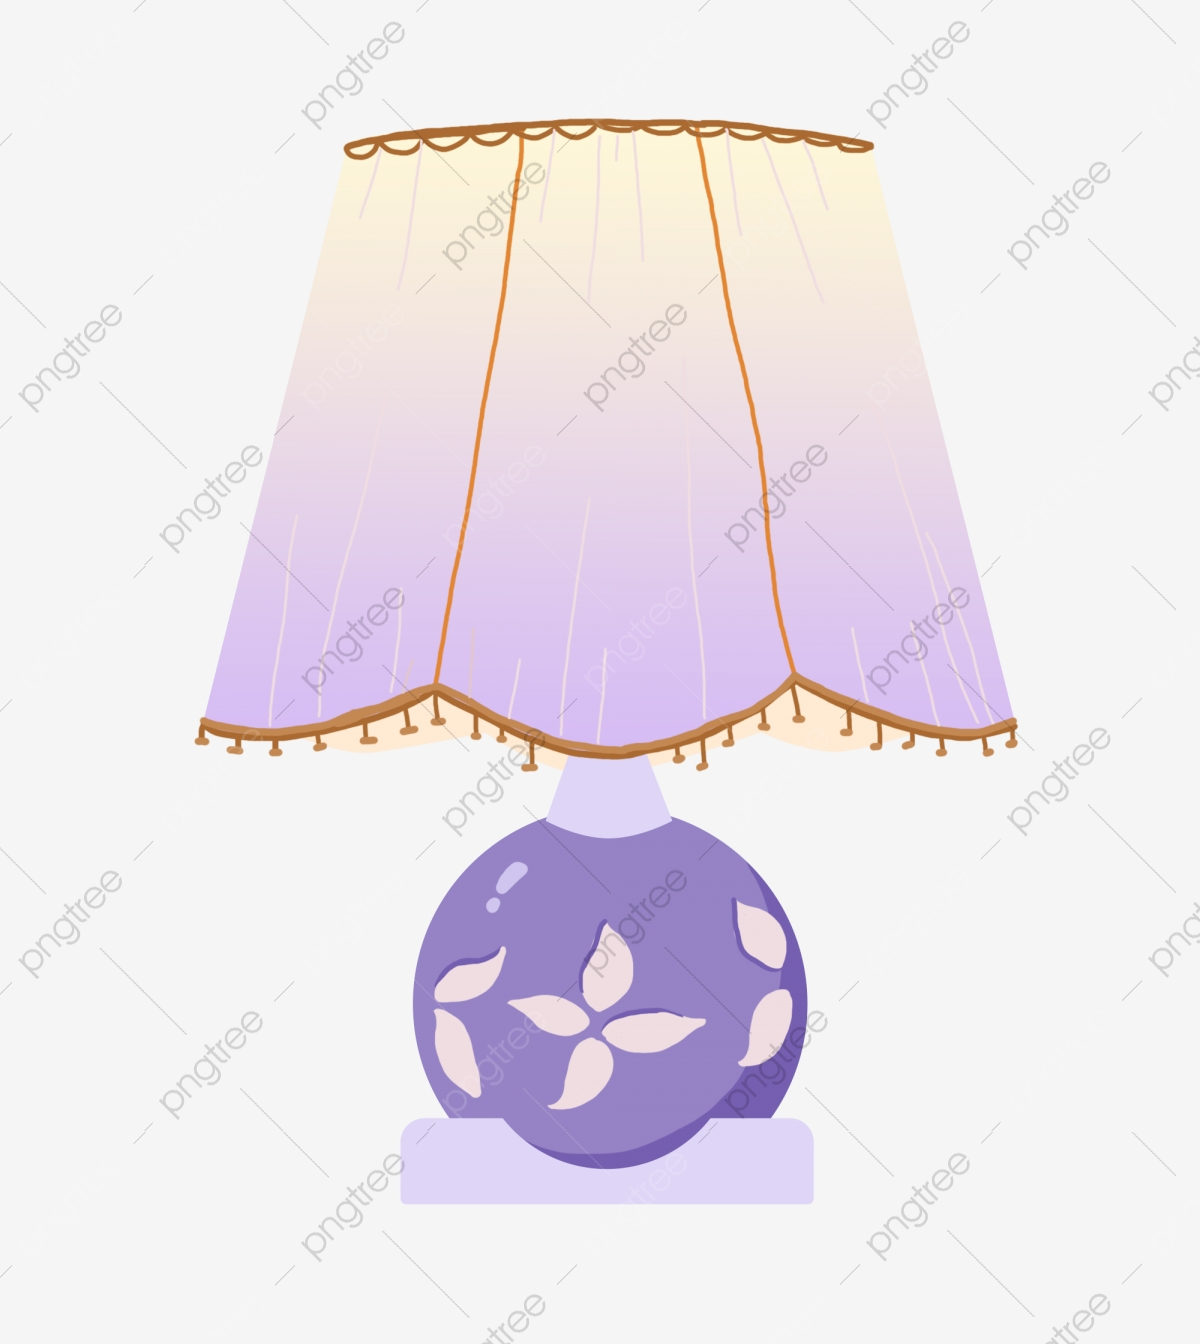 Purple Table Lamp Decoration Illustration Purple Table Lamp Beautiful Table Lamp Creative Table Lamp Png Transparent Clipart Image And Psd File For Free Download